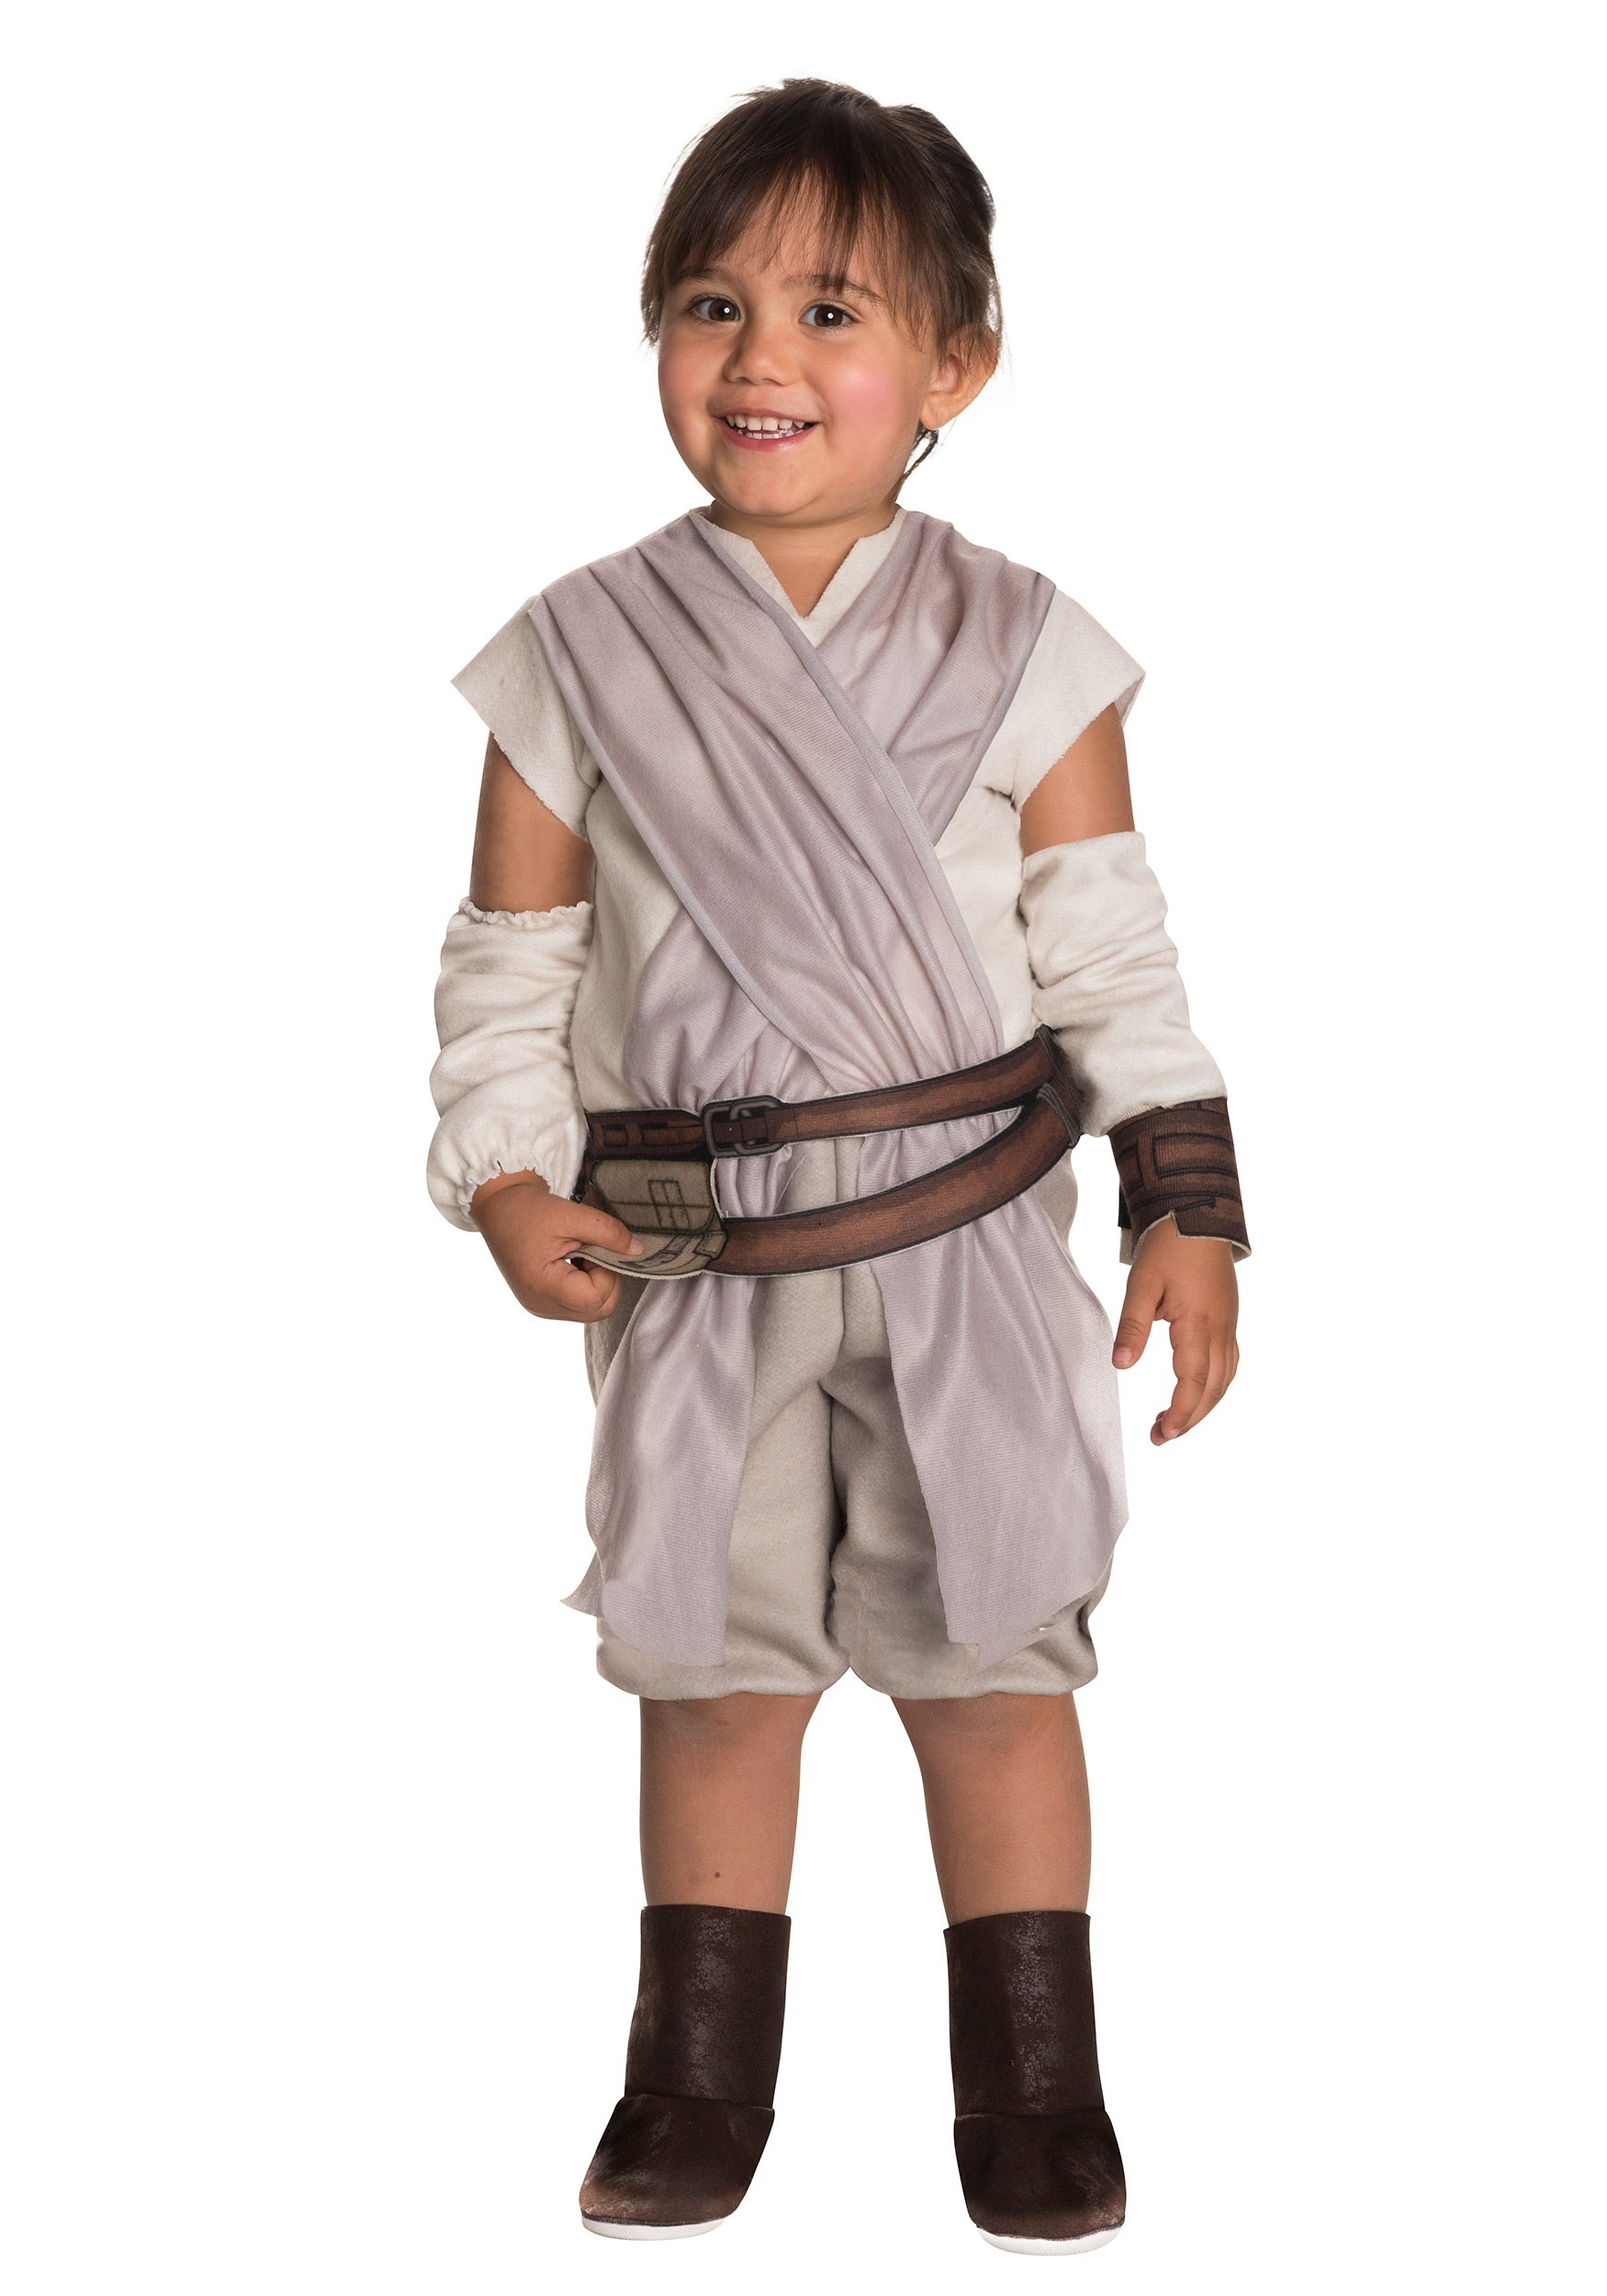 Star Wars The Force Awakens Toddler Rey Costume RU510192